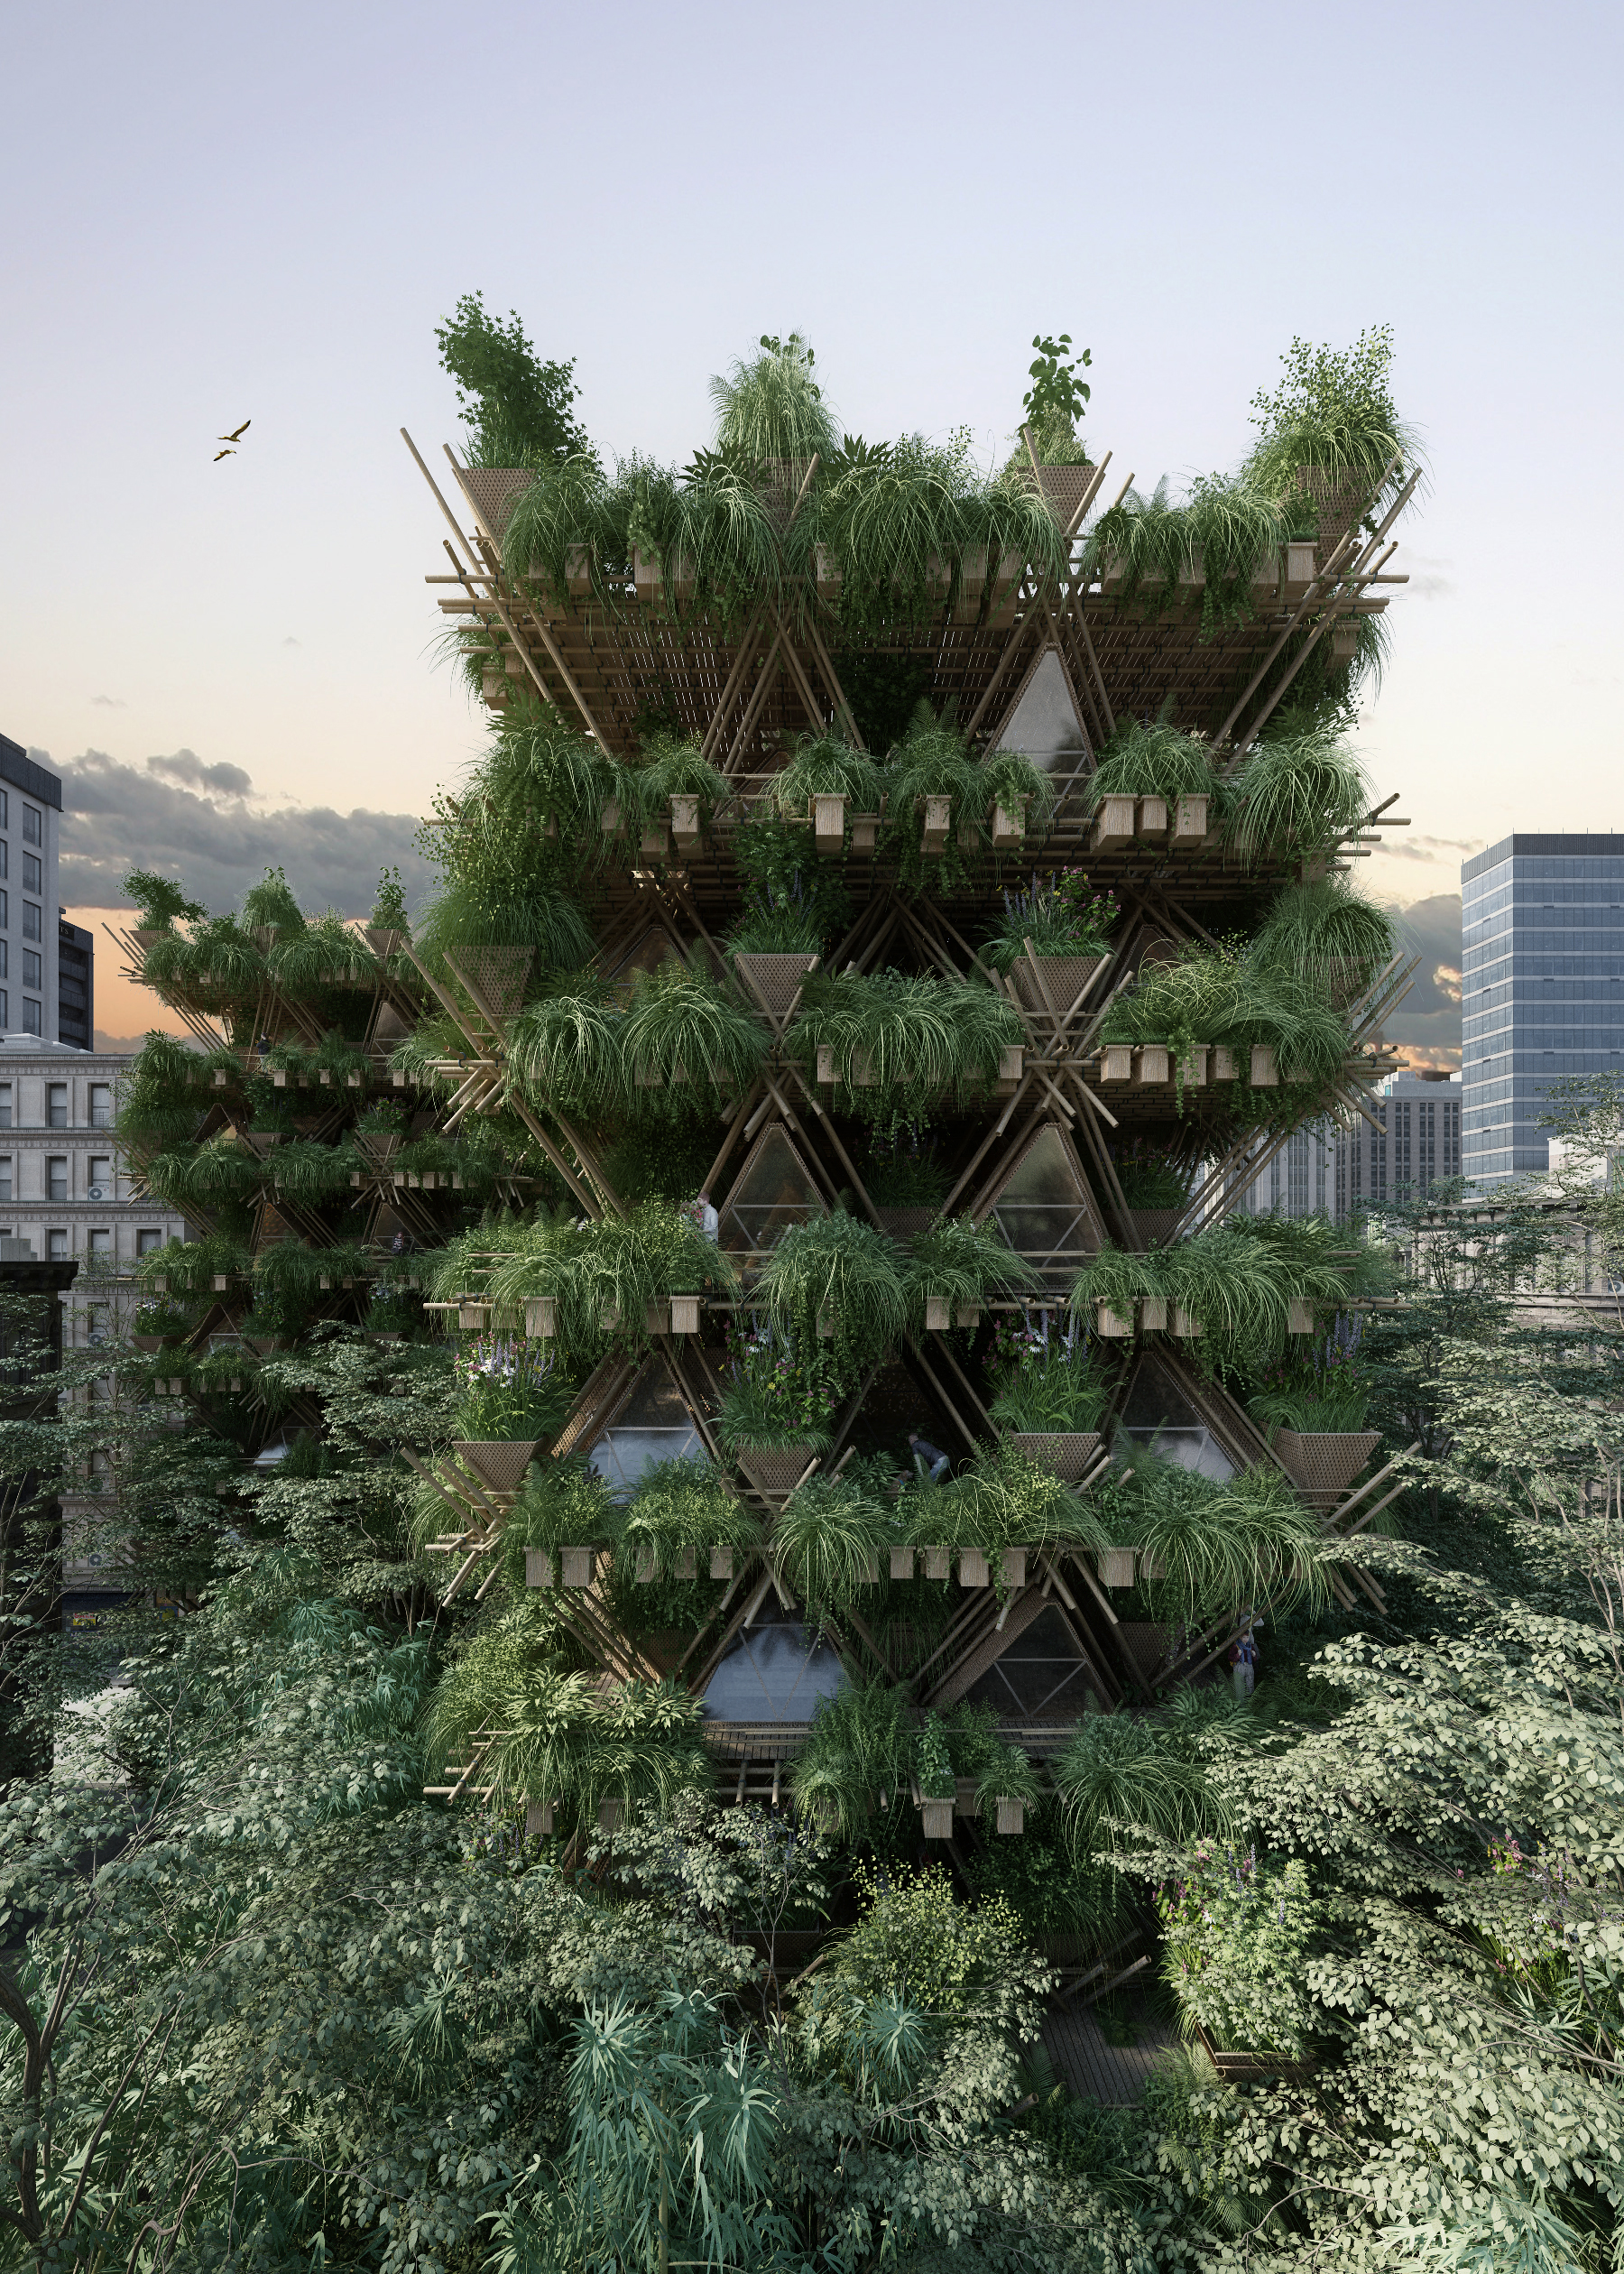 Bamboo city made from interlocking modular components.